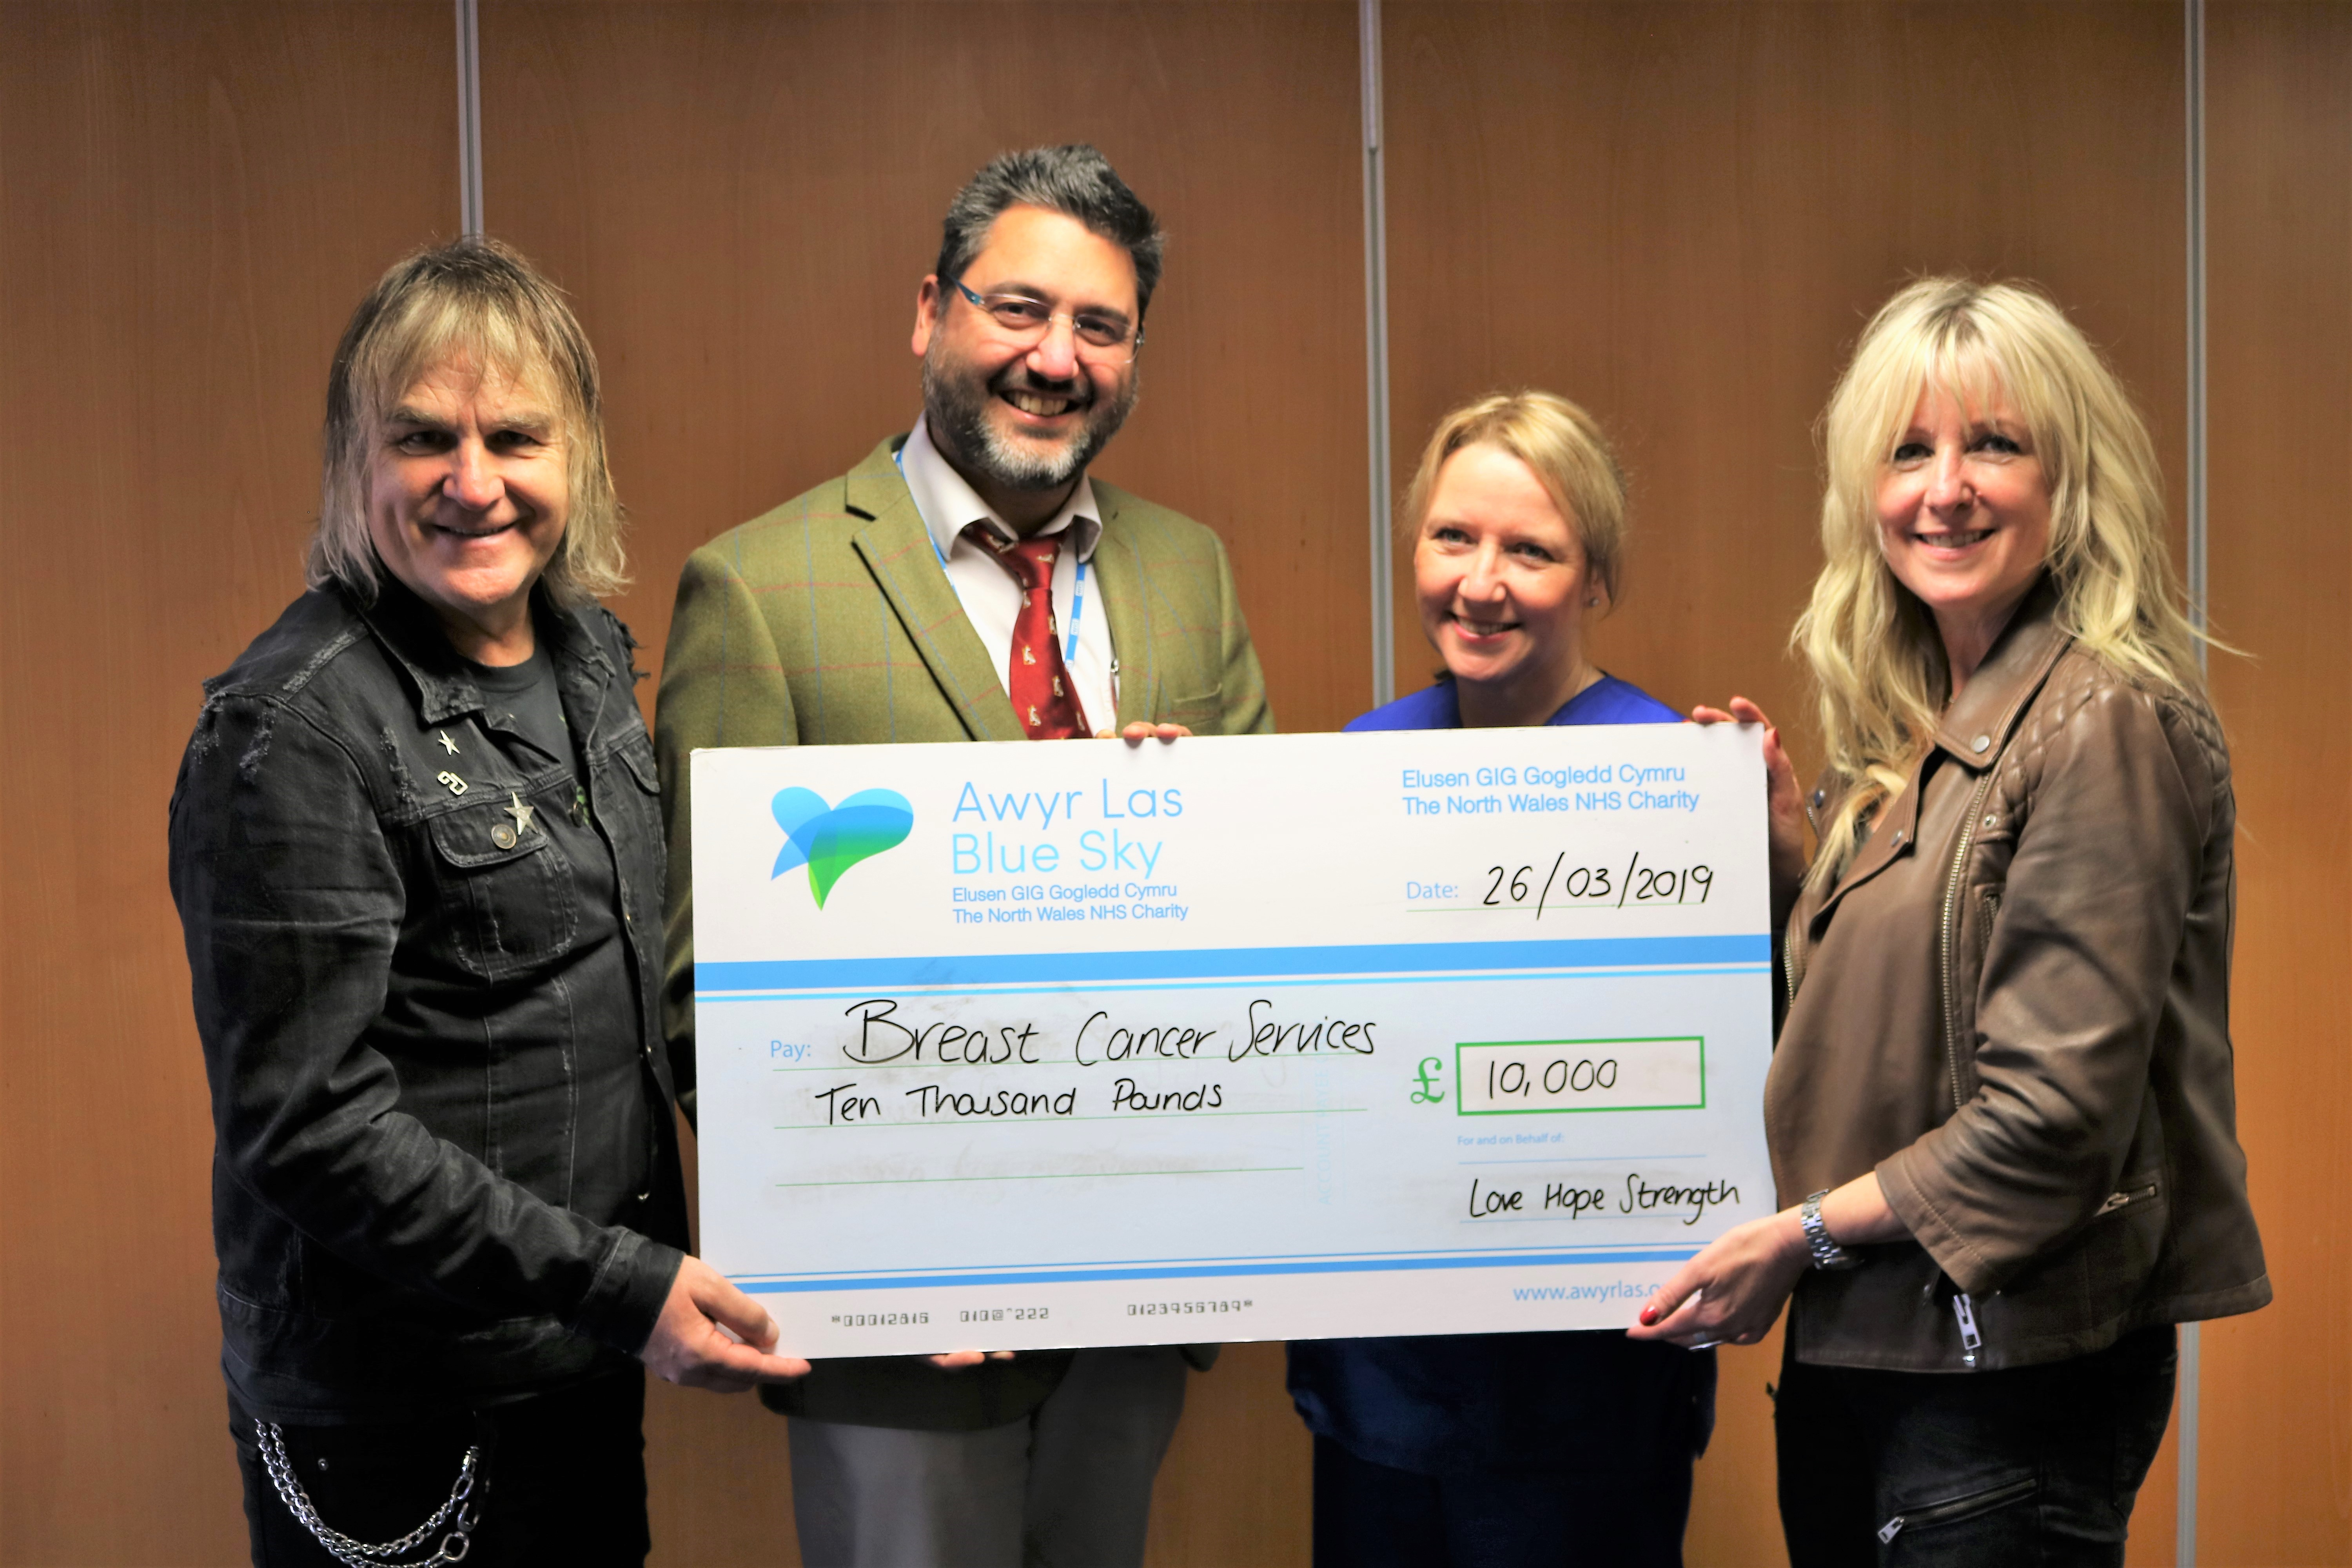 Leeswood Surgery - New | Charity founded by Mike & Jules